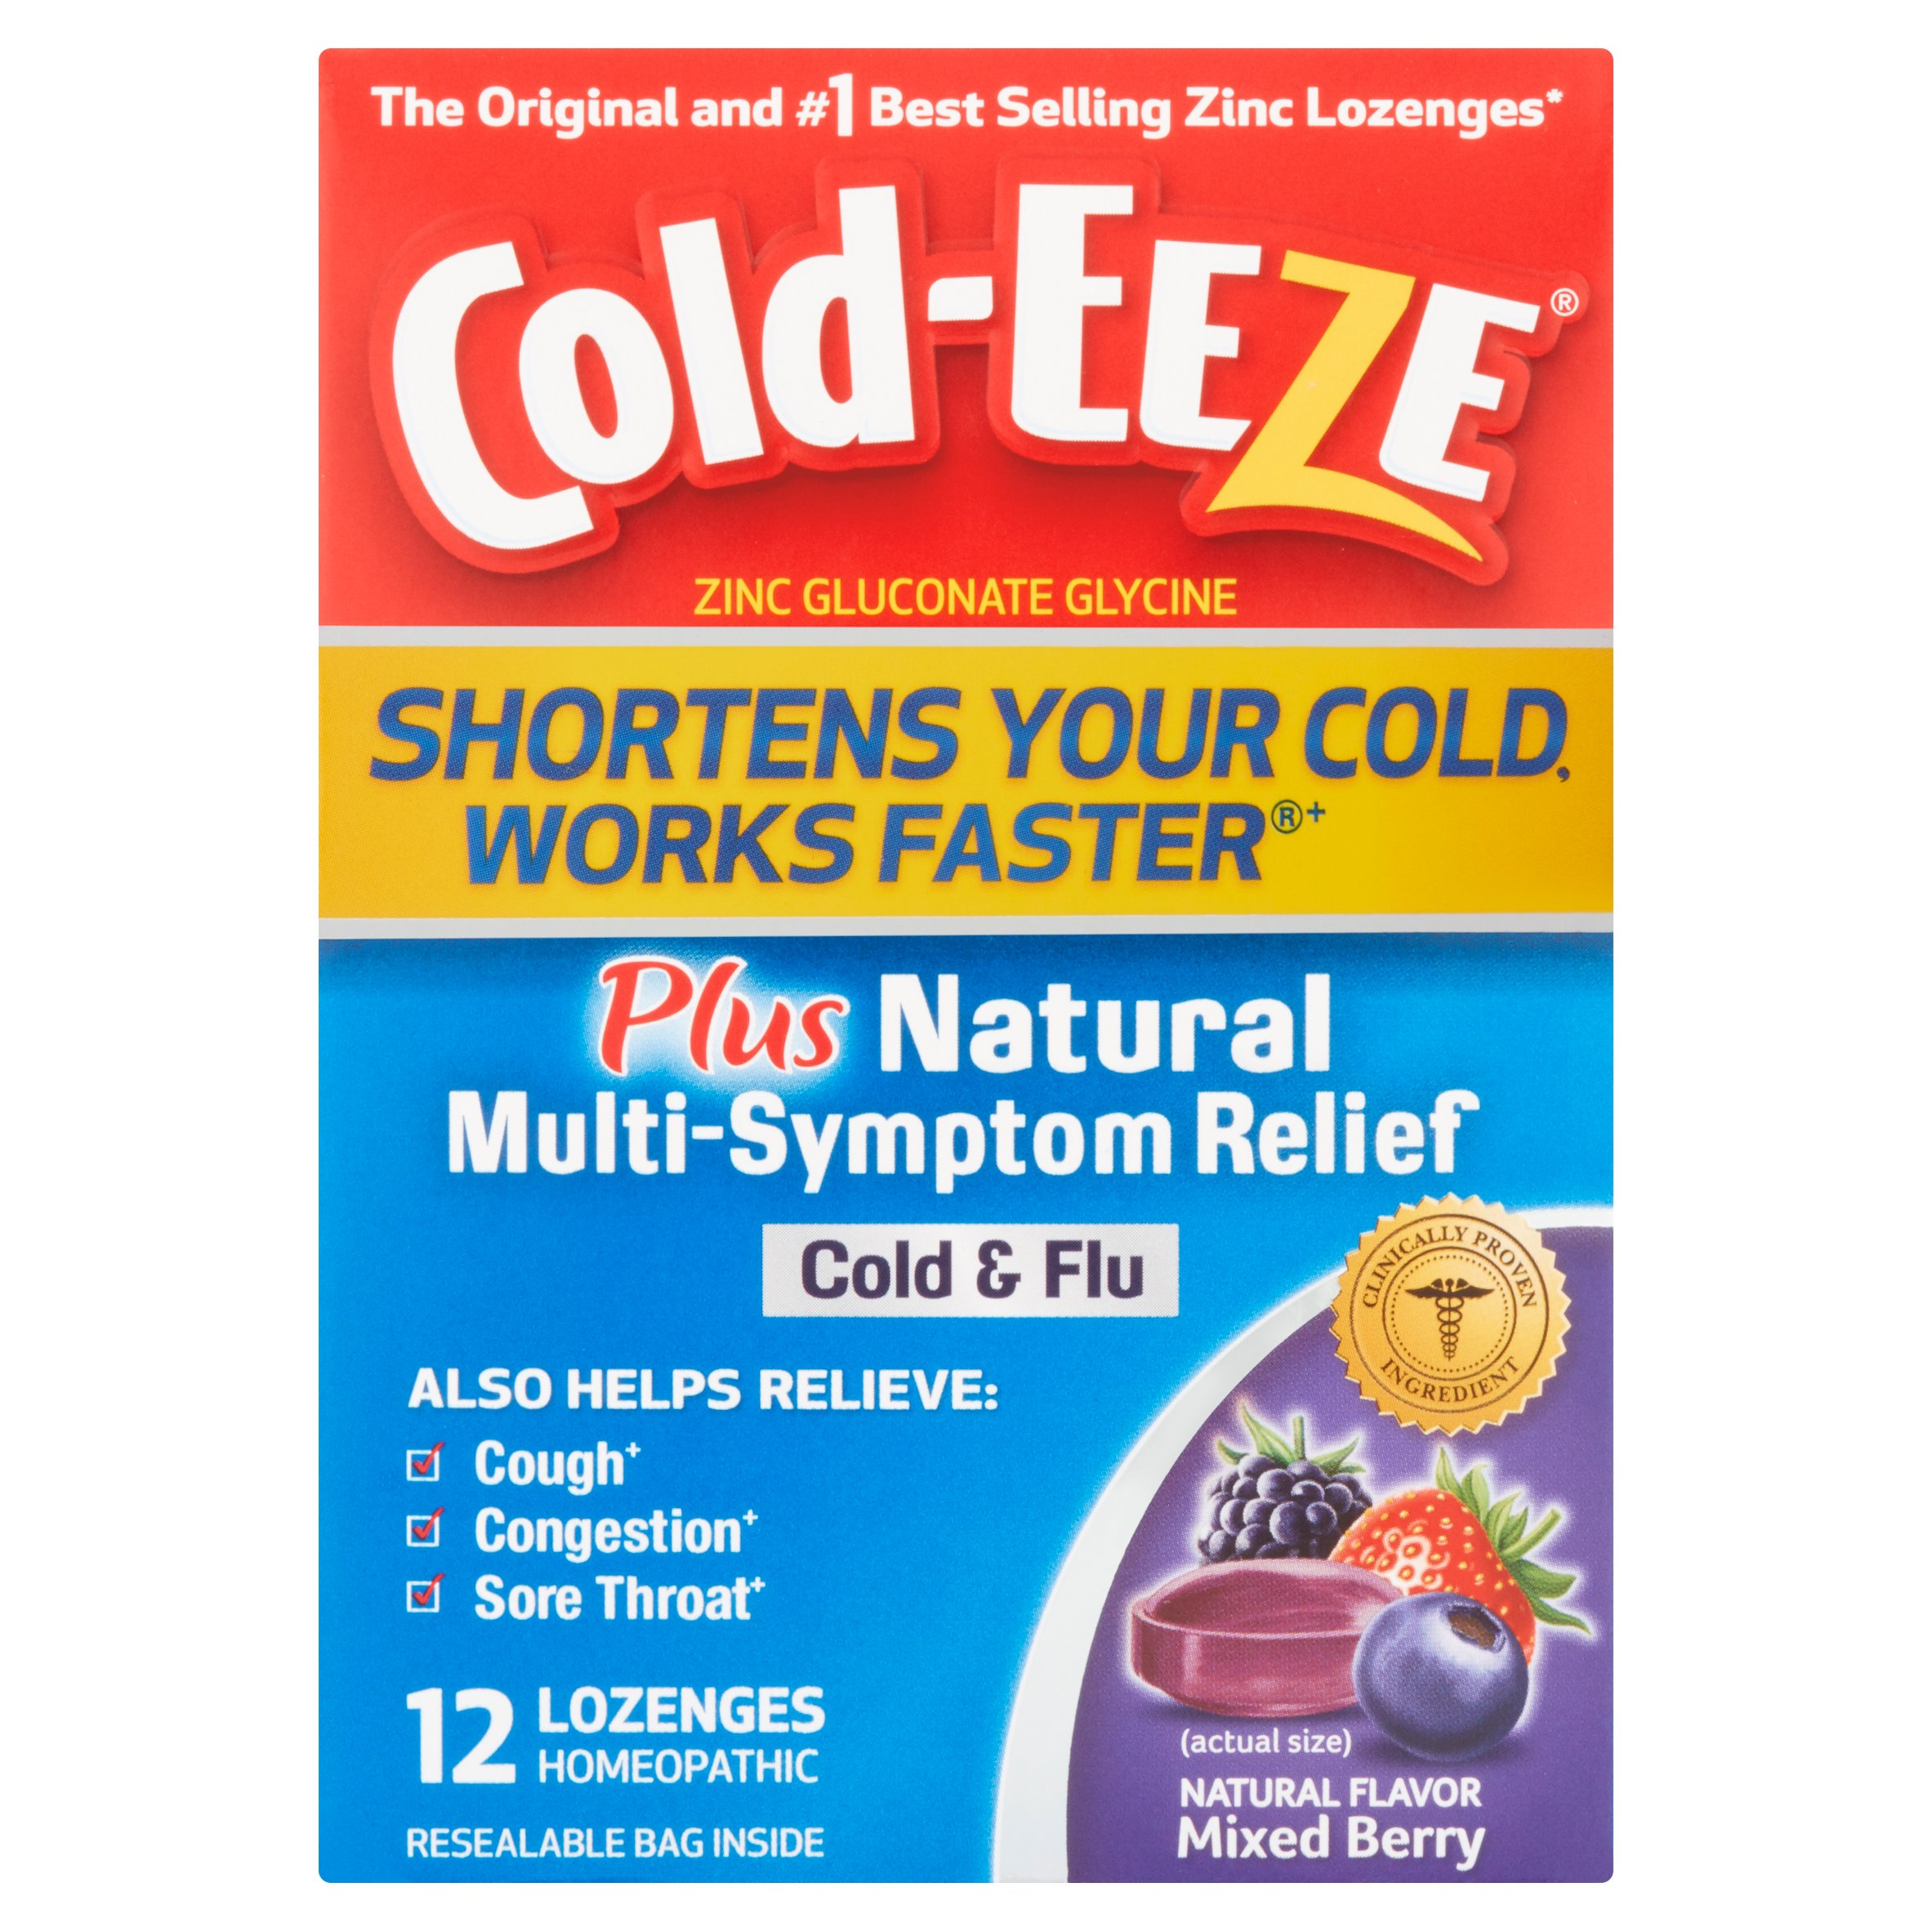 Cold-Eeze Mixed Berry Plus Natural Multi-Symptom Relief Cold & Flu Lozenges, 12 count